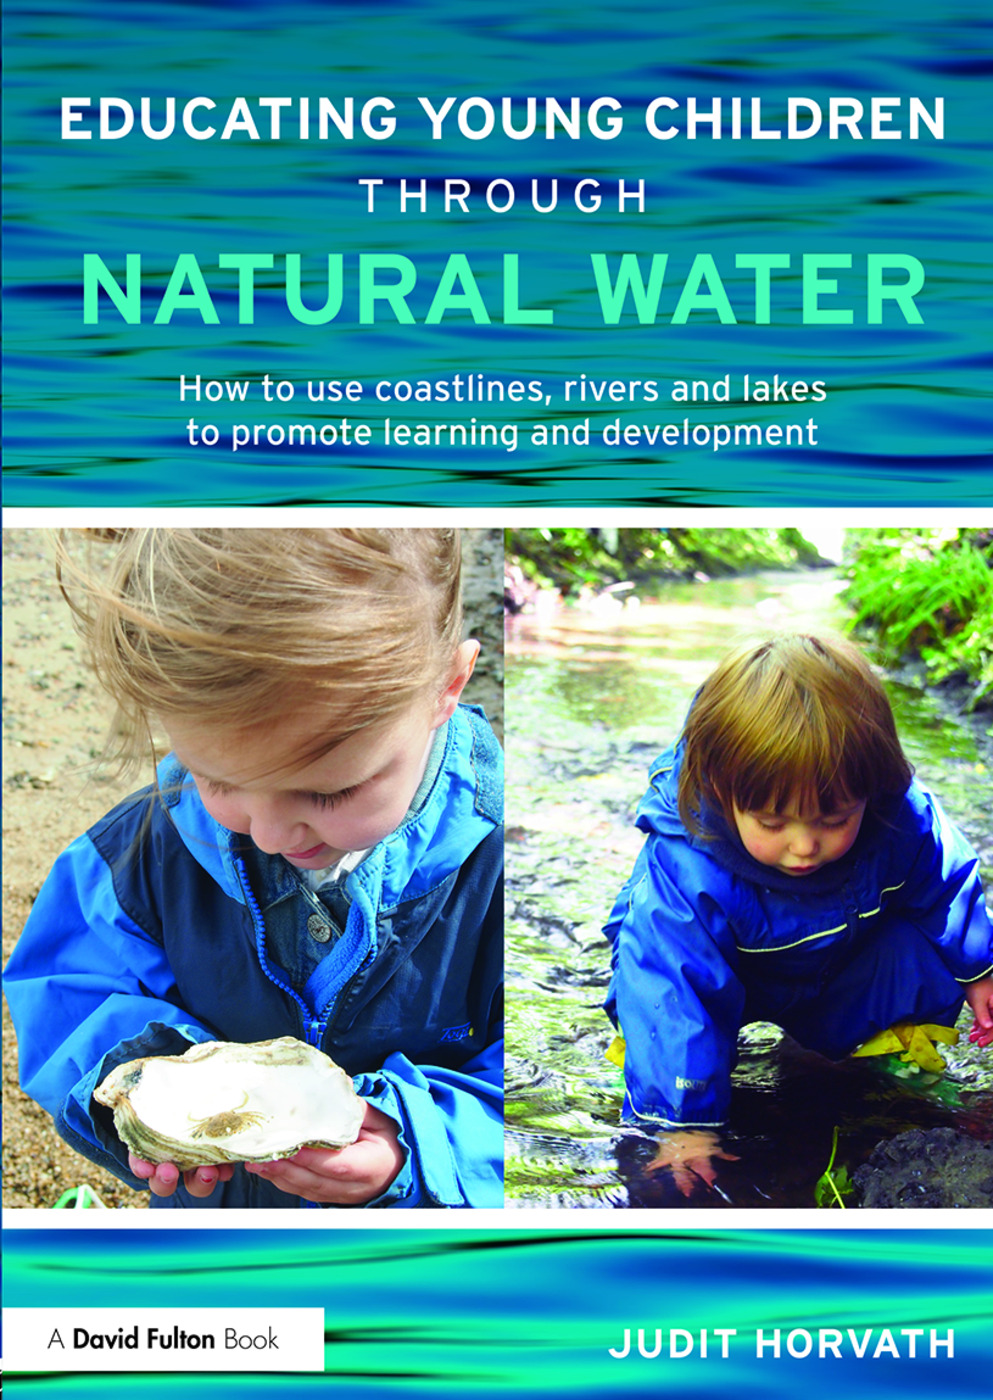 Educating Young Children through Natural Water: How to use coastlines, rivers and lakes to promote learning and development book cover